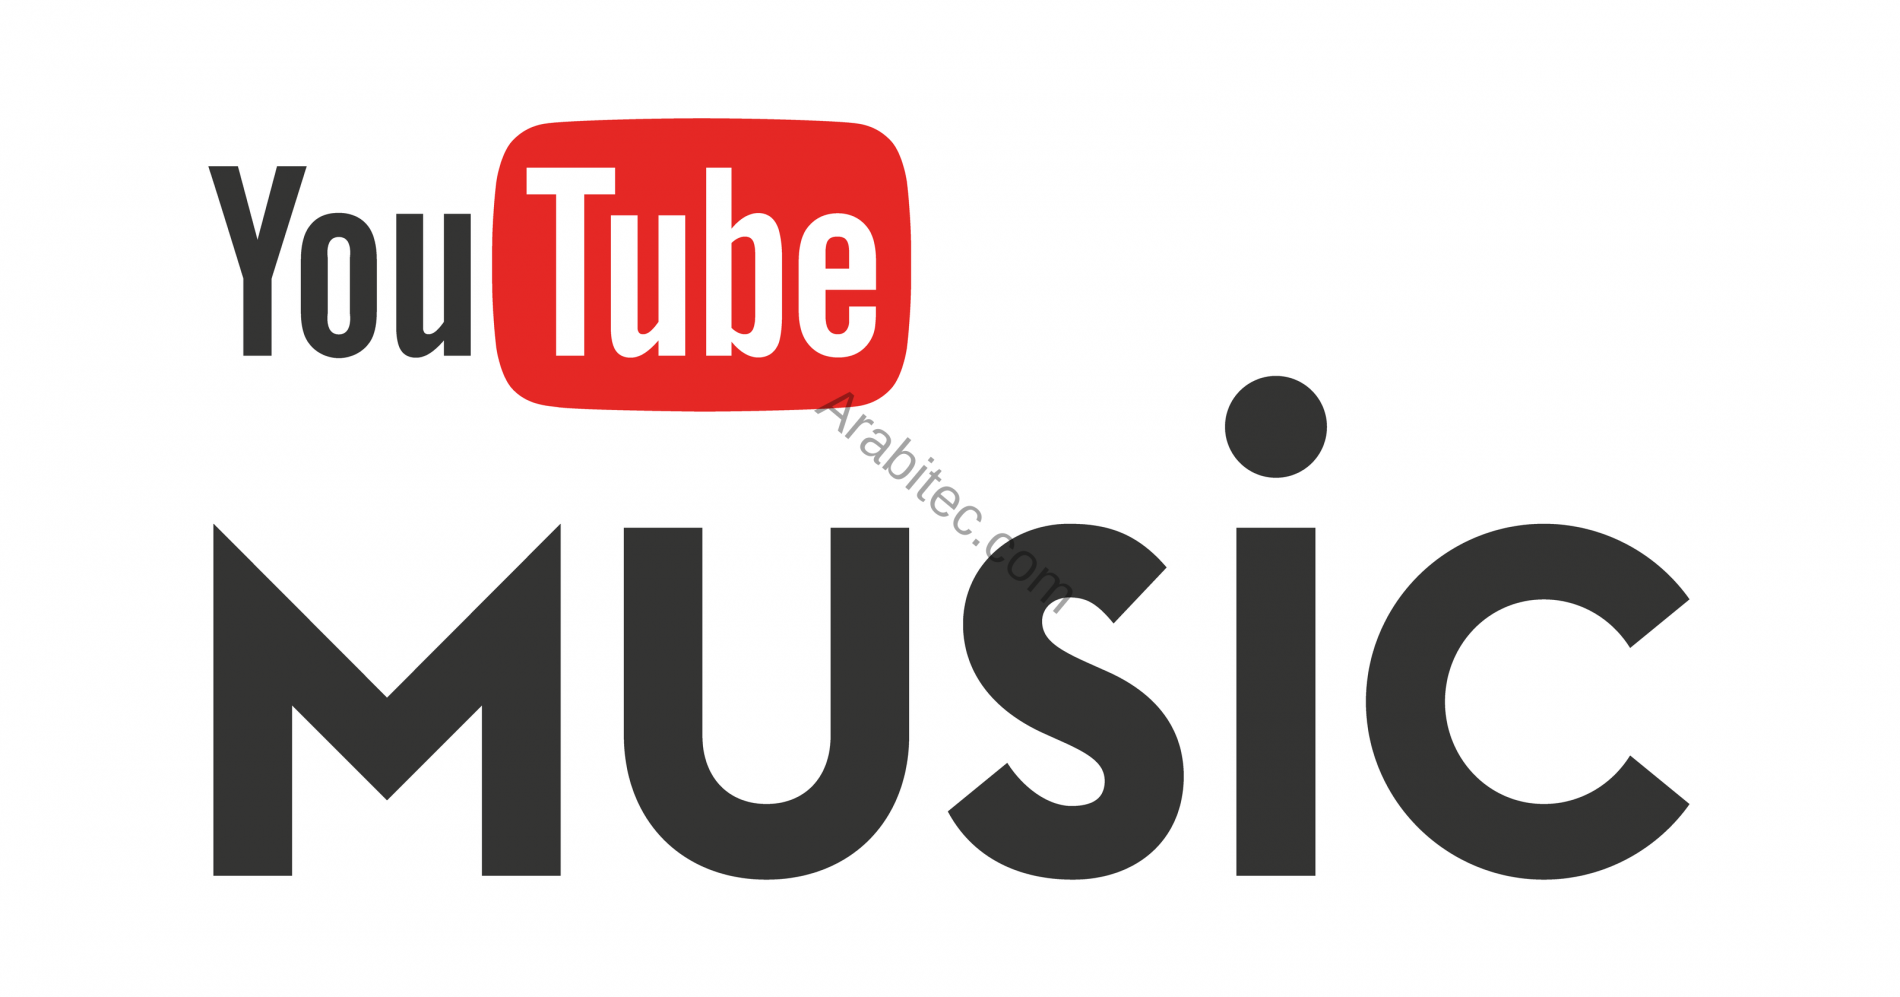 YouTube Music: What You Need to Know يوتيوب موسيقى ما تحتاج ان تعرفه